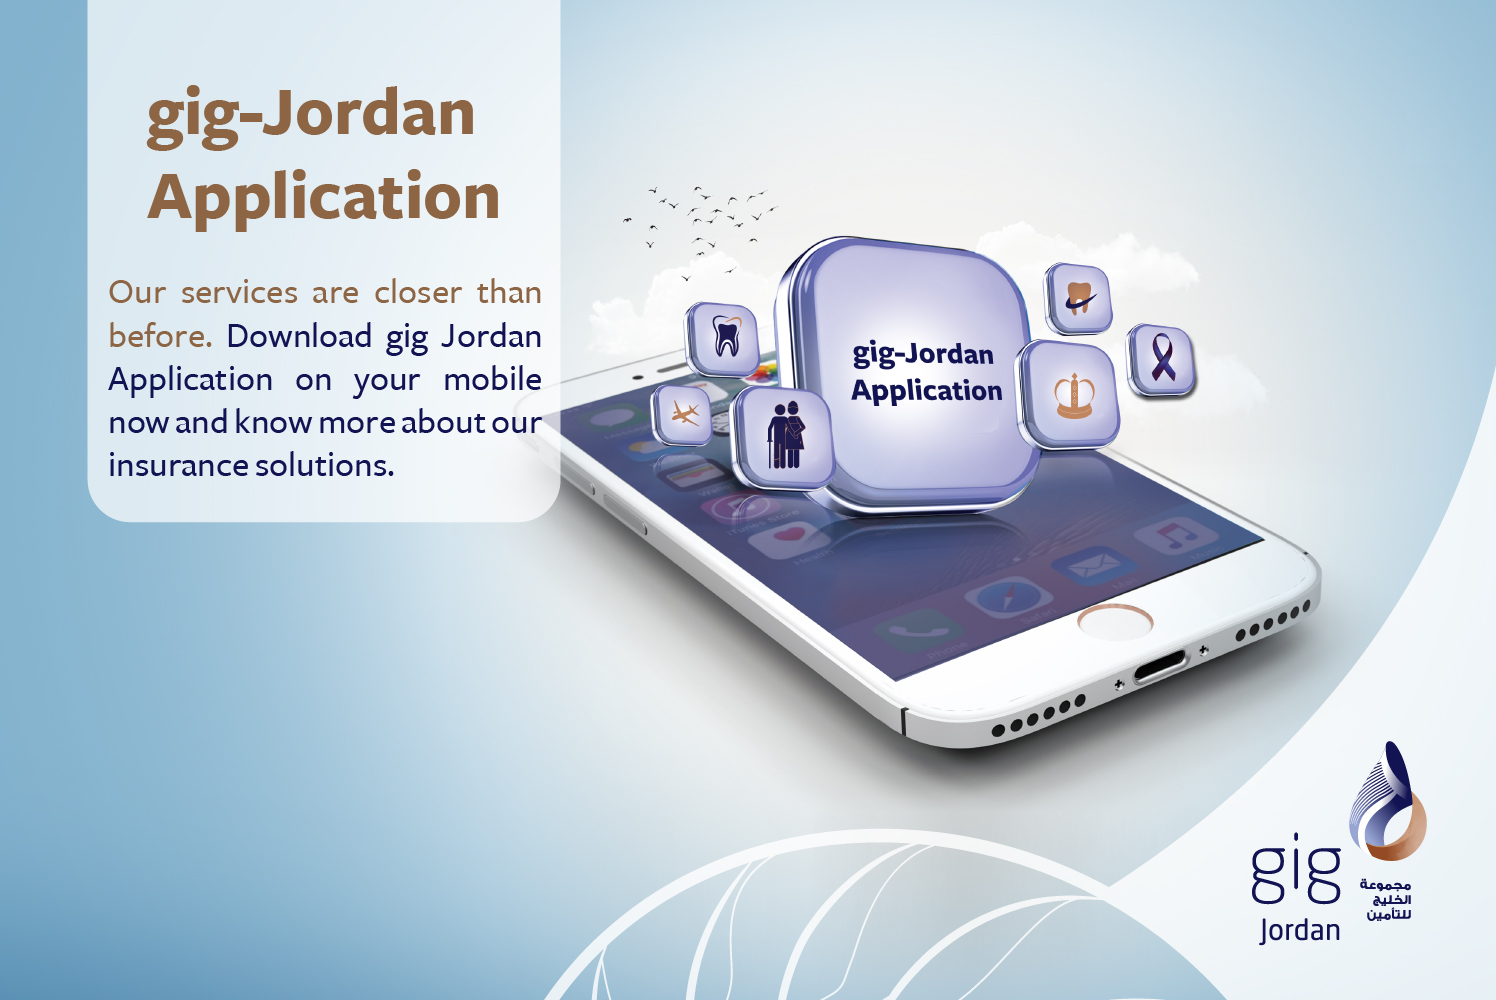 gig – Jordan launches gig Jordan new Application on smart phones